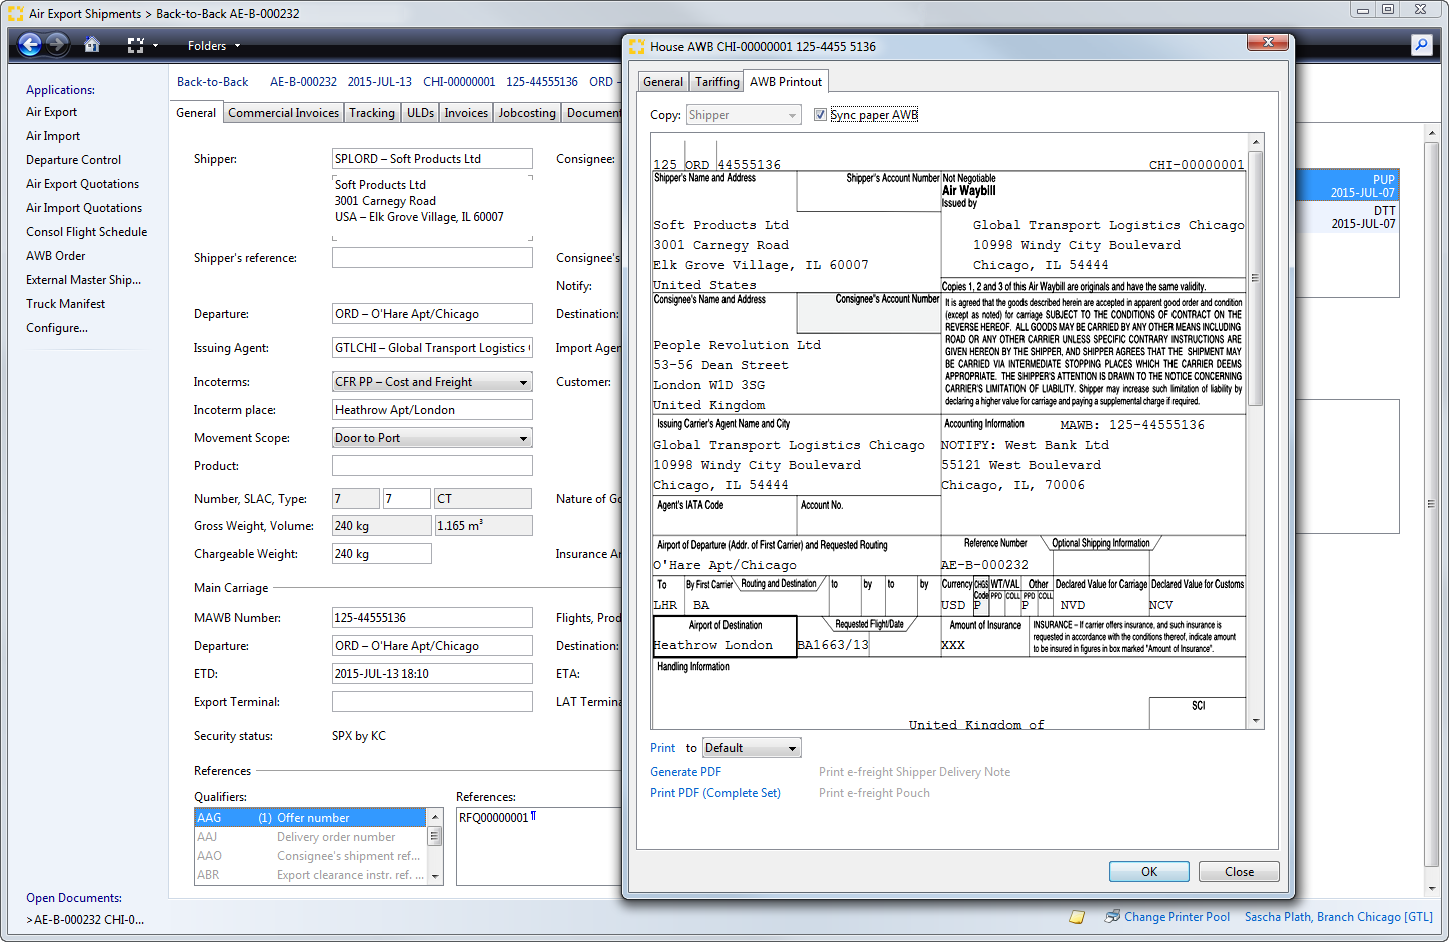 Integrated editor for House- and IATA-AWB.